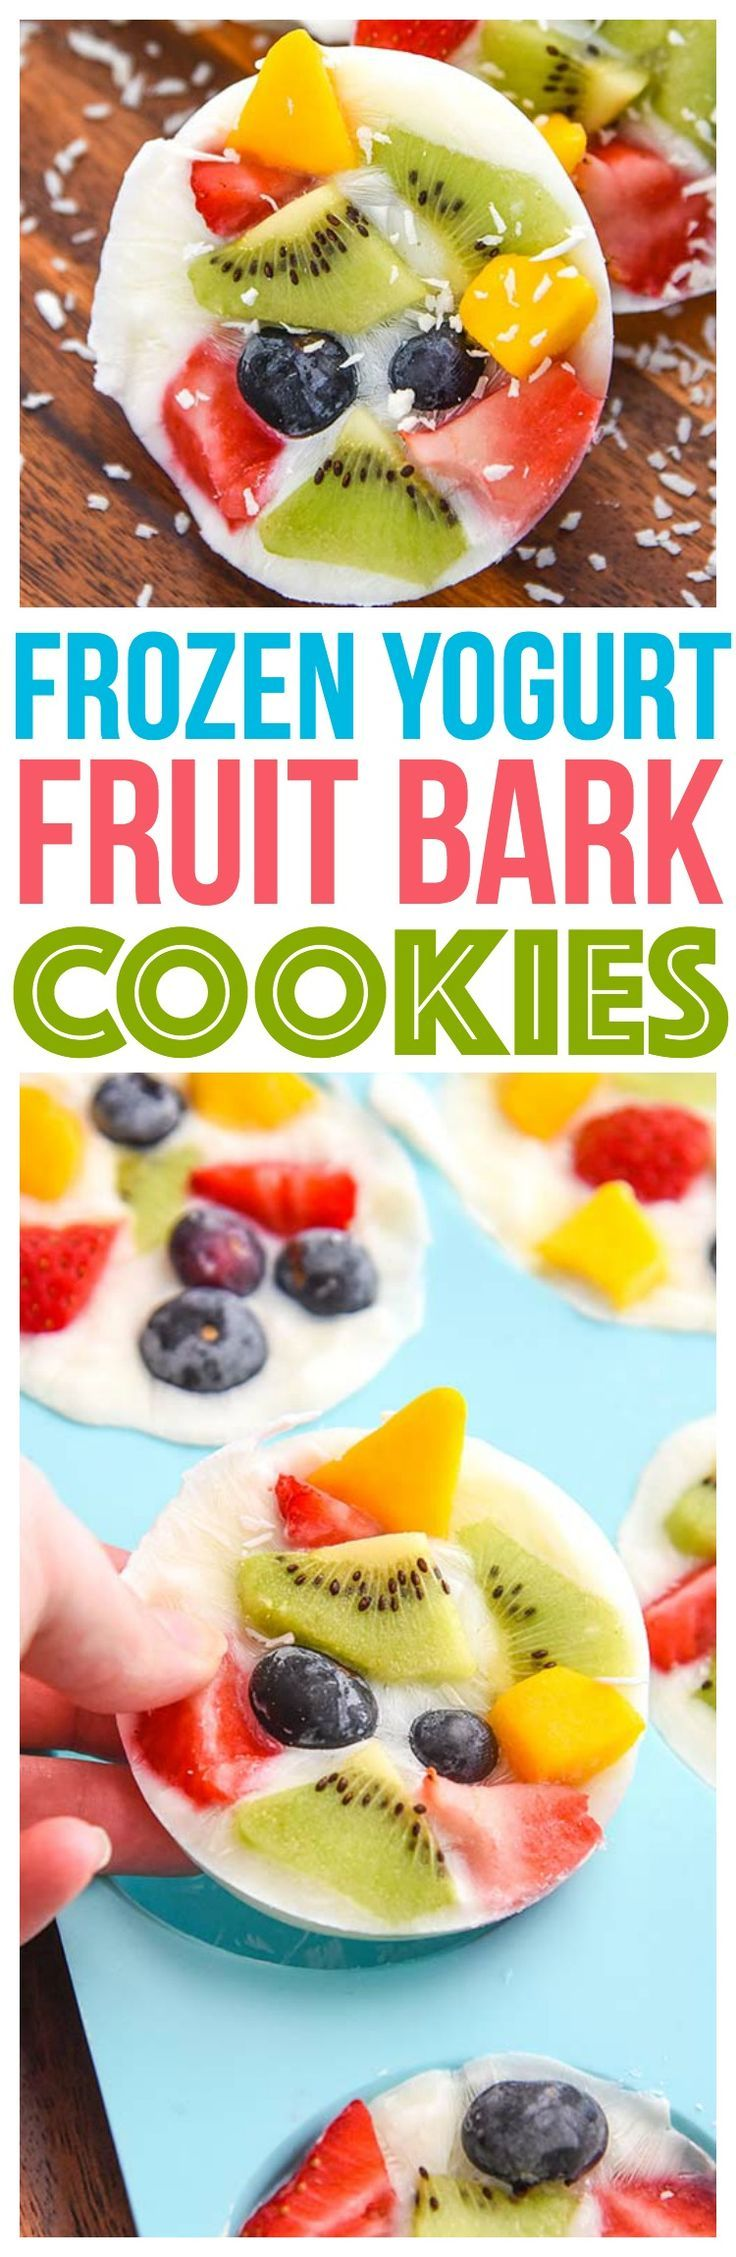 1092 best images about healthy snack recipes on pinterest - Refreshing dishes yogurt try summer ...